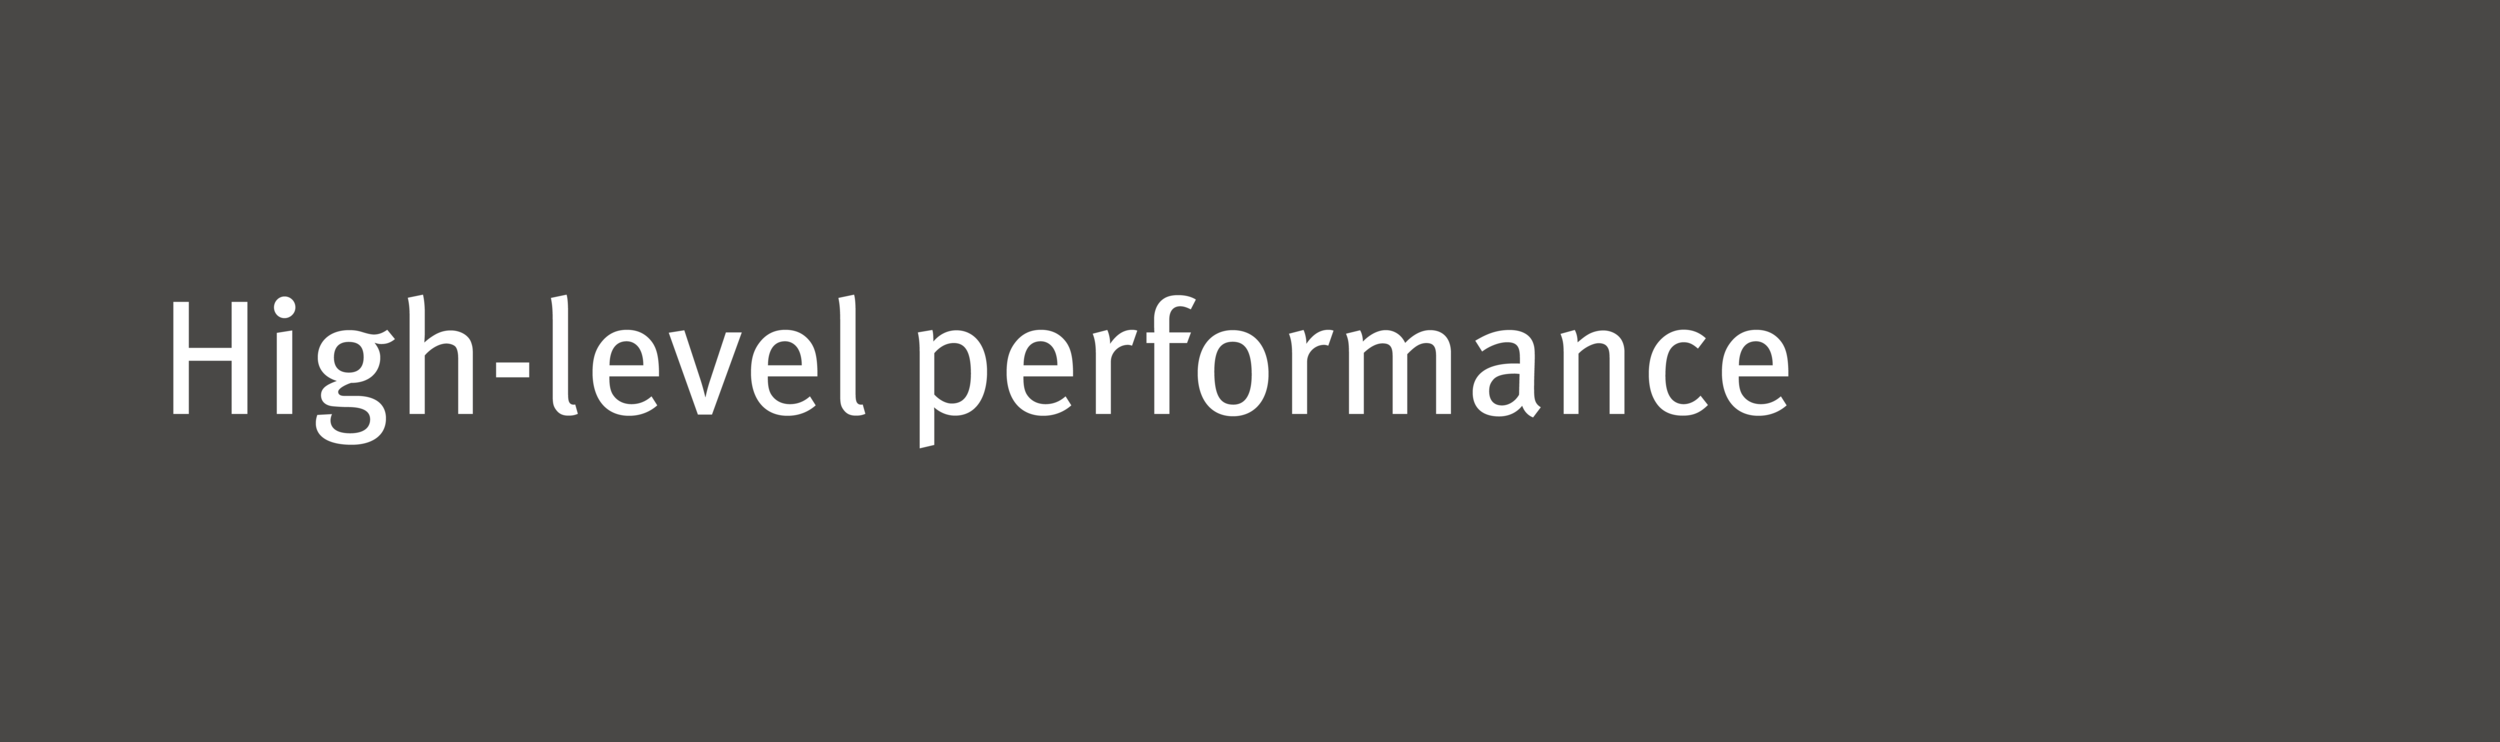 2 Performance-01.png